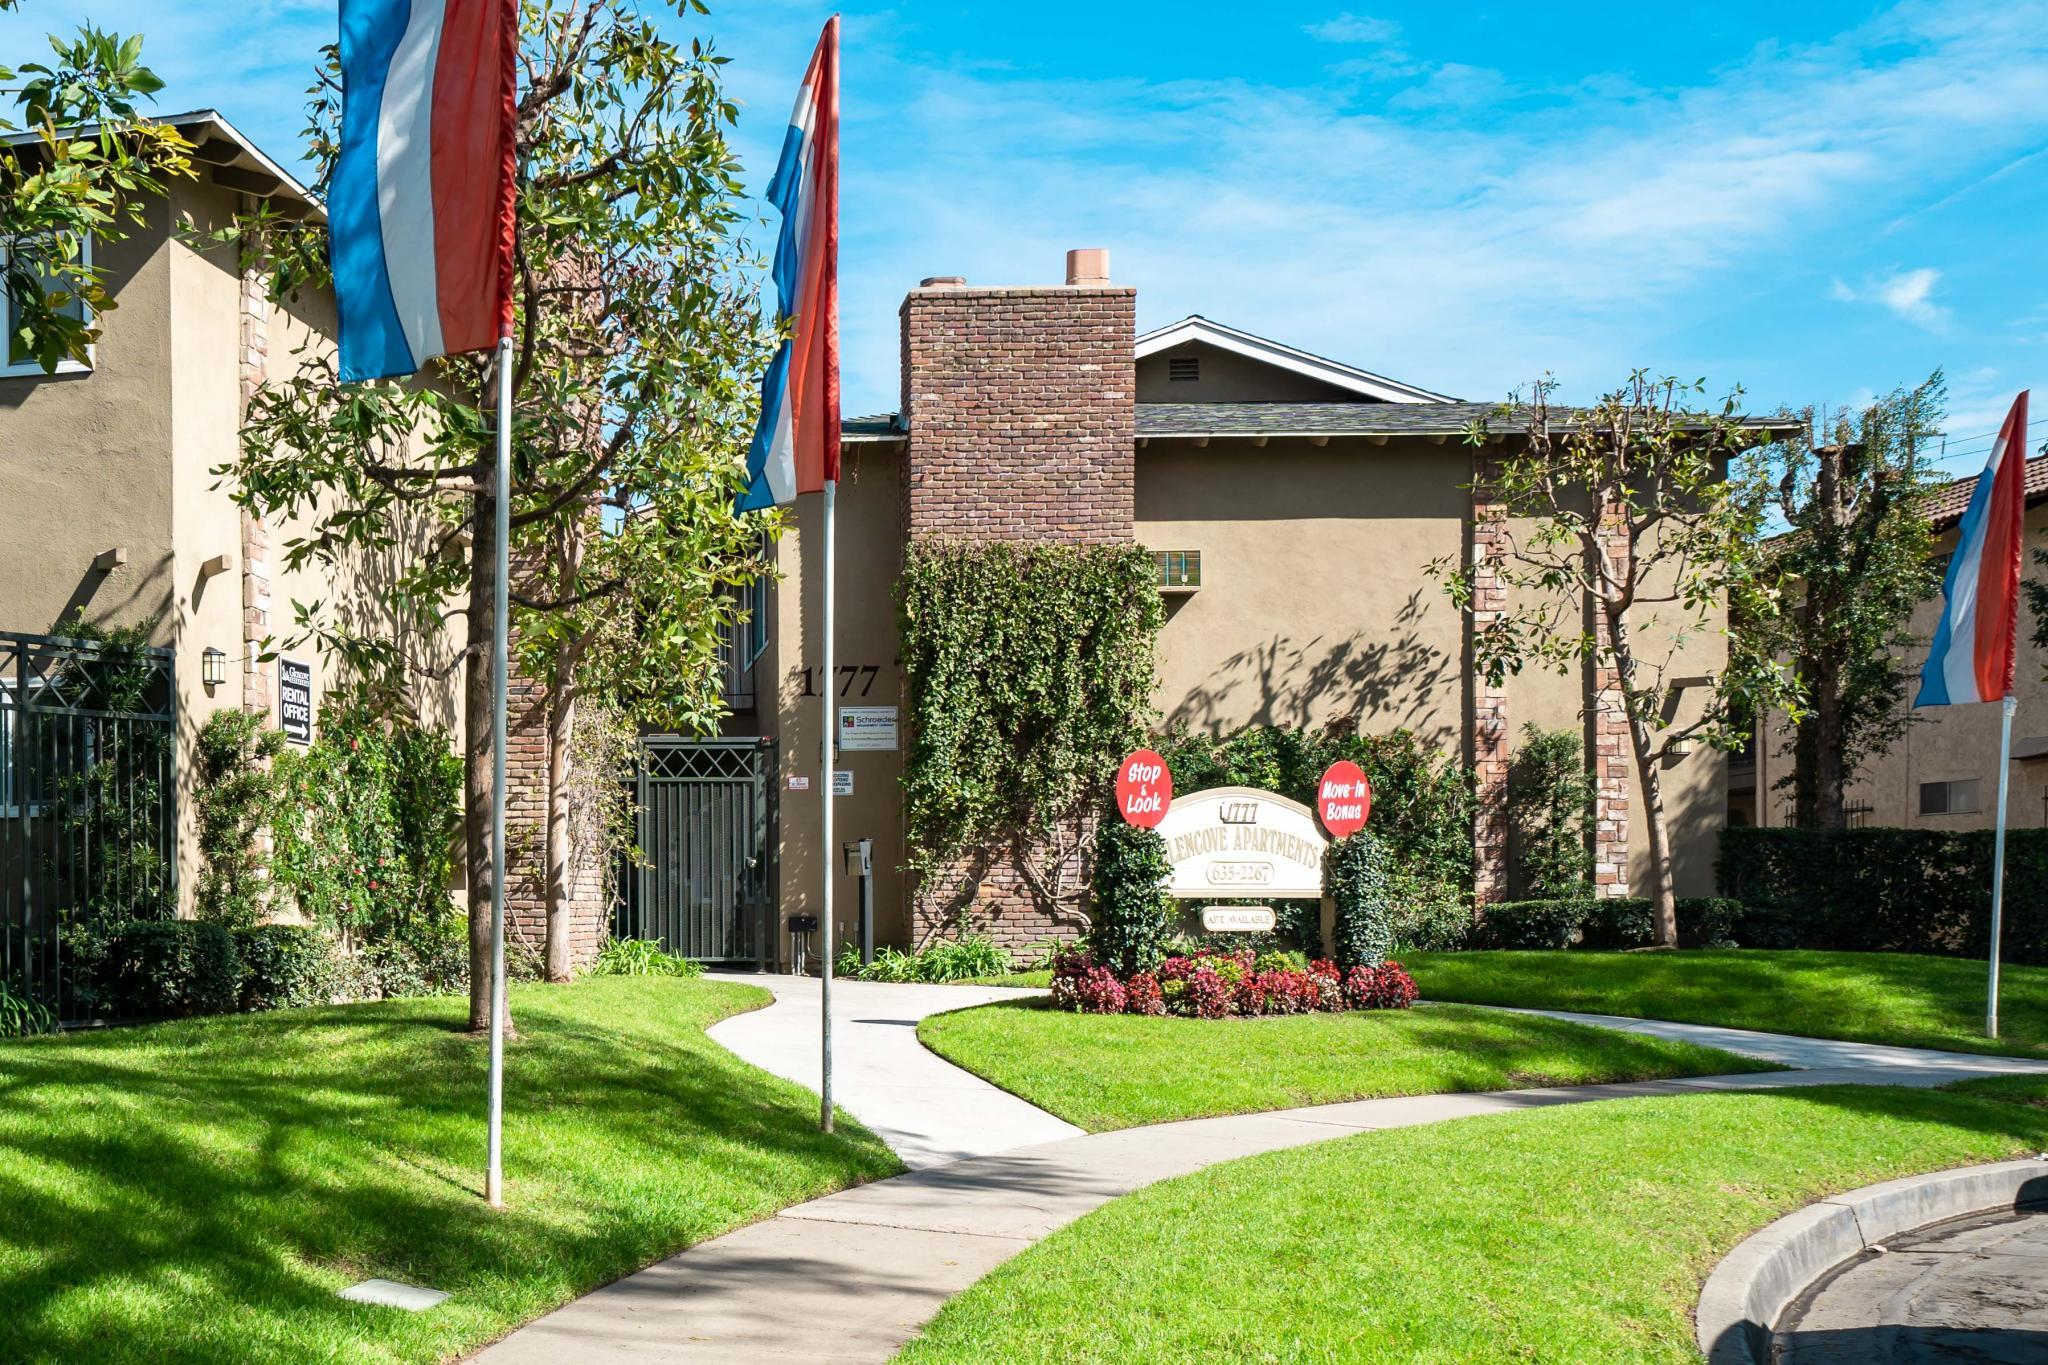 ,Studio And 1 Bedroom Apartments For Rent Near Me  ,studio or 1 bedroom apartment for rent near me  ,cheap 1 bedroom studio apartments for rent near me  ,studio and 1 bedroom apartments for rent in chicago  ,studio or 1 bedroom apartments for rent near me  ,studio or one bedroom apartments for rent near me  ,studio and 1 bedroom apartments for rent near me  ,studio apartments for rent near me by owner  ,studio apartments for rent near me cheap  ,studio apartments for rent near me craigslist  ,studio apartments for rent near me dog friendly  ,studio apartments for rent near me no credit check  ,studio apartments for rent near me nj  ,studio apartments for rent near me pet friendly  ,studio apartments for rent near me under 1000  ,studio apartments for rent near me under 500  ,studio apartments for rent near me under 600  ,studio apartments for rent near me under 800  ,studio apartments for rent near me under 700  ,studio apartments for rent near me with utilities included  ,studio apartments for rent near me zillow  ,1 bedroom studio apartments for rent near me  ,cheap 1 bedroom studio apartments for rent melbourne  ,1 bedroom studio apartment for rent near me  ,one bedroom studio apartments for rent near me  ,1 bedroom studio apartments for rent melbourne  ,1 bedroom studio apartments for rent melbourne cbd  ,1 bedroom studio apartments for rent melbourne australia  ,1 bedroom and studio apartments for rent near me  ,1 bedroom or studio apartments for rent near me  ,1 bedroom or studio apartment for rent near me  ,1 bedroom studio apartments for rent chicago il  ,studio and one bedroom apartments for rent near me  ,cheapest studio apartments for rent near me  ,cheap studio apartments for rent near atlanta ga  ,studio apartments for rent near journal square  ,studio apartments for rent near jfk airport  ,studio apartments for rent cheap nyc  ,studio apartments for rent near me  ,studio apartments for rent near quantico va  ,studio type apartment for rent near me  ,studio apartments for rent near ucla  ,studio apartments for rent craigslist ct  ,studio apartments for rent craigslist long island  ,studio apartments for rent craigslist nj  ,studio apartments for rent craigslist ny  ,studio apartments for rent dog friendly  ,studio apartments for rent no credit check  ,studio apartments for rent near edison nj  ,studio apartments for rent near clifton nj  ,studio apartments for rent near newark nj  ,studio apartments for rent near hackensack nj  ,studio apartments for rent near morristown nj  ,studio apartments for rent near piscataway nj  ,studio apartments for rent near parsippany nj  ,studio apartments for rent near paterson nj  ,studio apartments for rent near princeton nj  ,studio apartments for rent near paramus nj  ,studio apartments for rent near wayne nj  ,studio apartments for rent near woodbridge nj